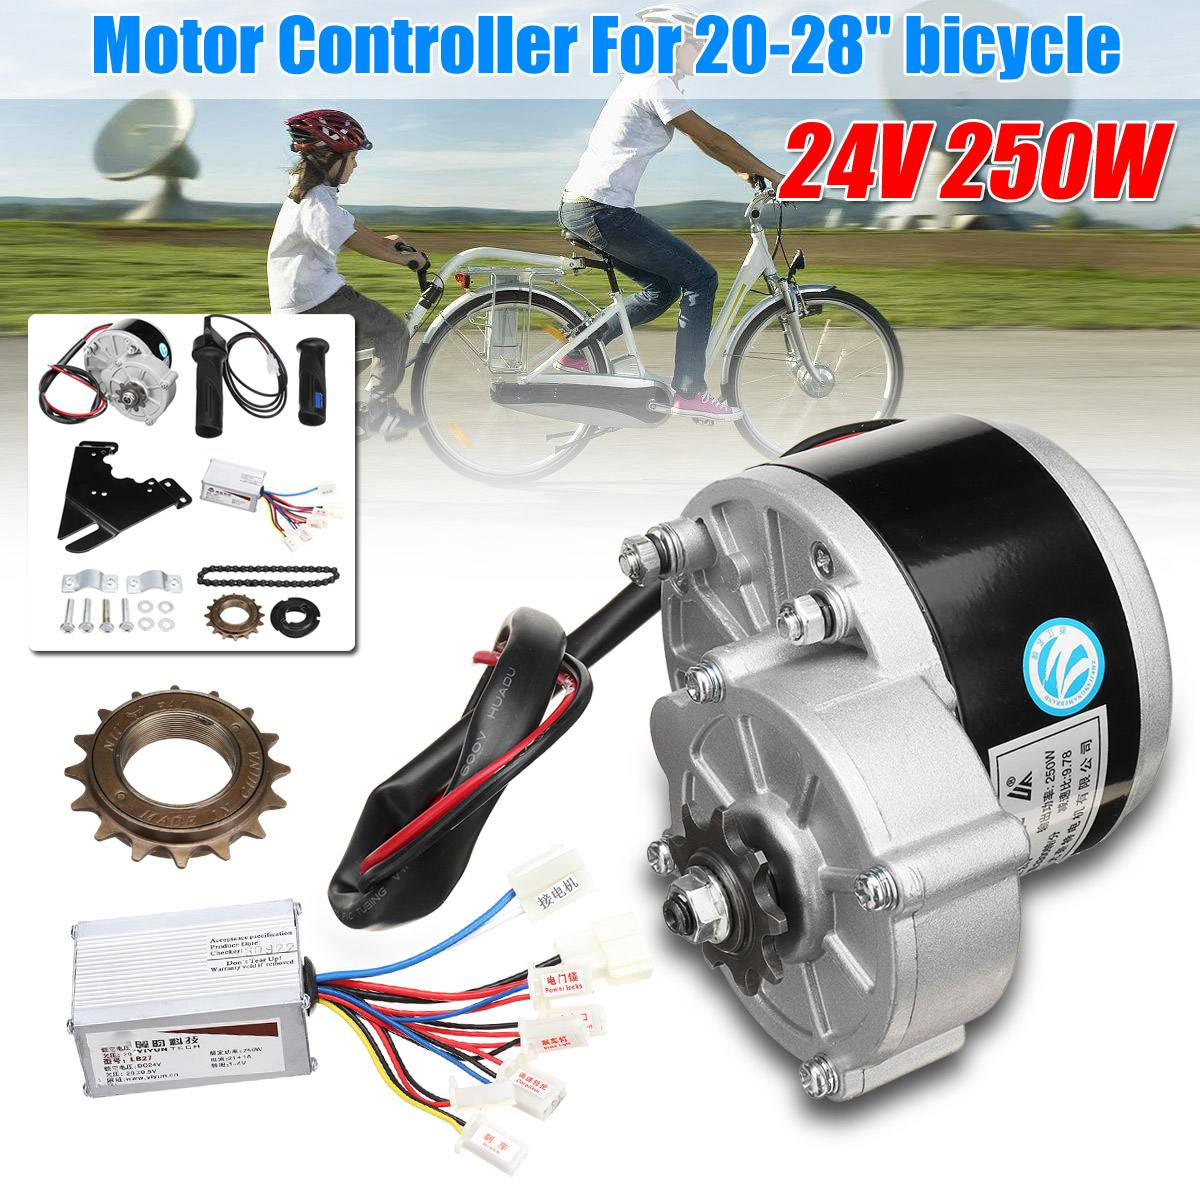 24V 250W Motor Controller Electric Bike Conversion Kit Flywheel Handle Motor Bracket Chain For 20-28 inch e-bike Bicycle kit mobile phone